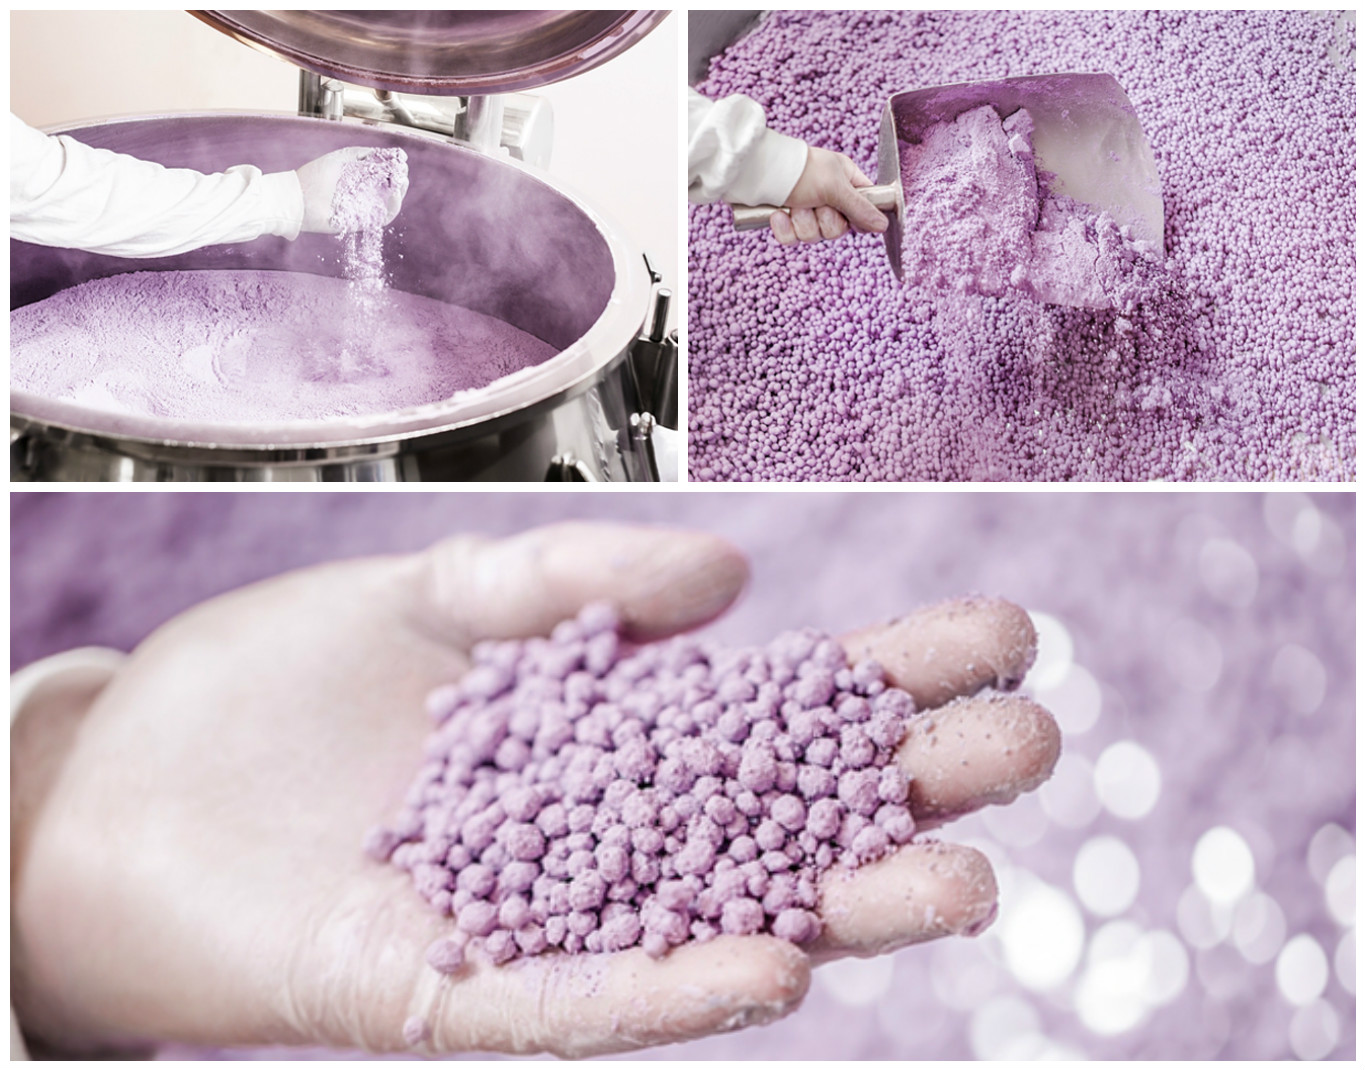 Guerlain Factory production of Meteorites Pearls